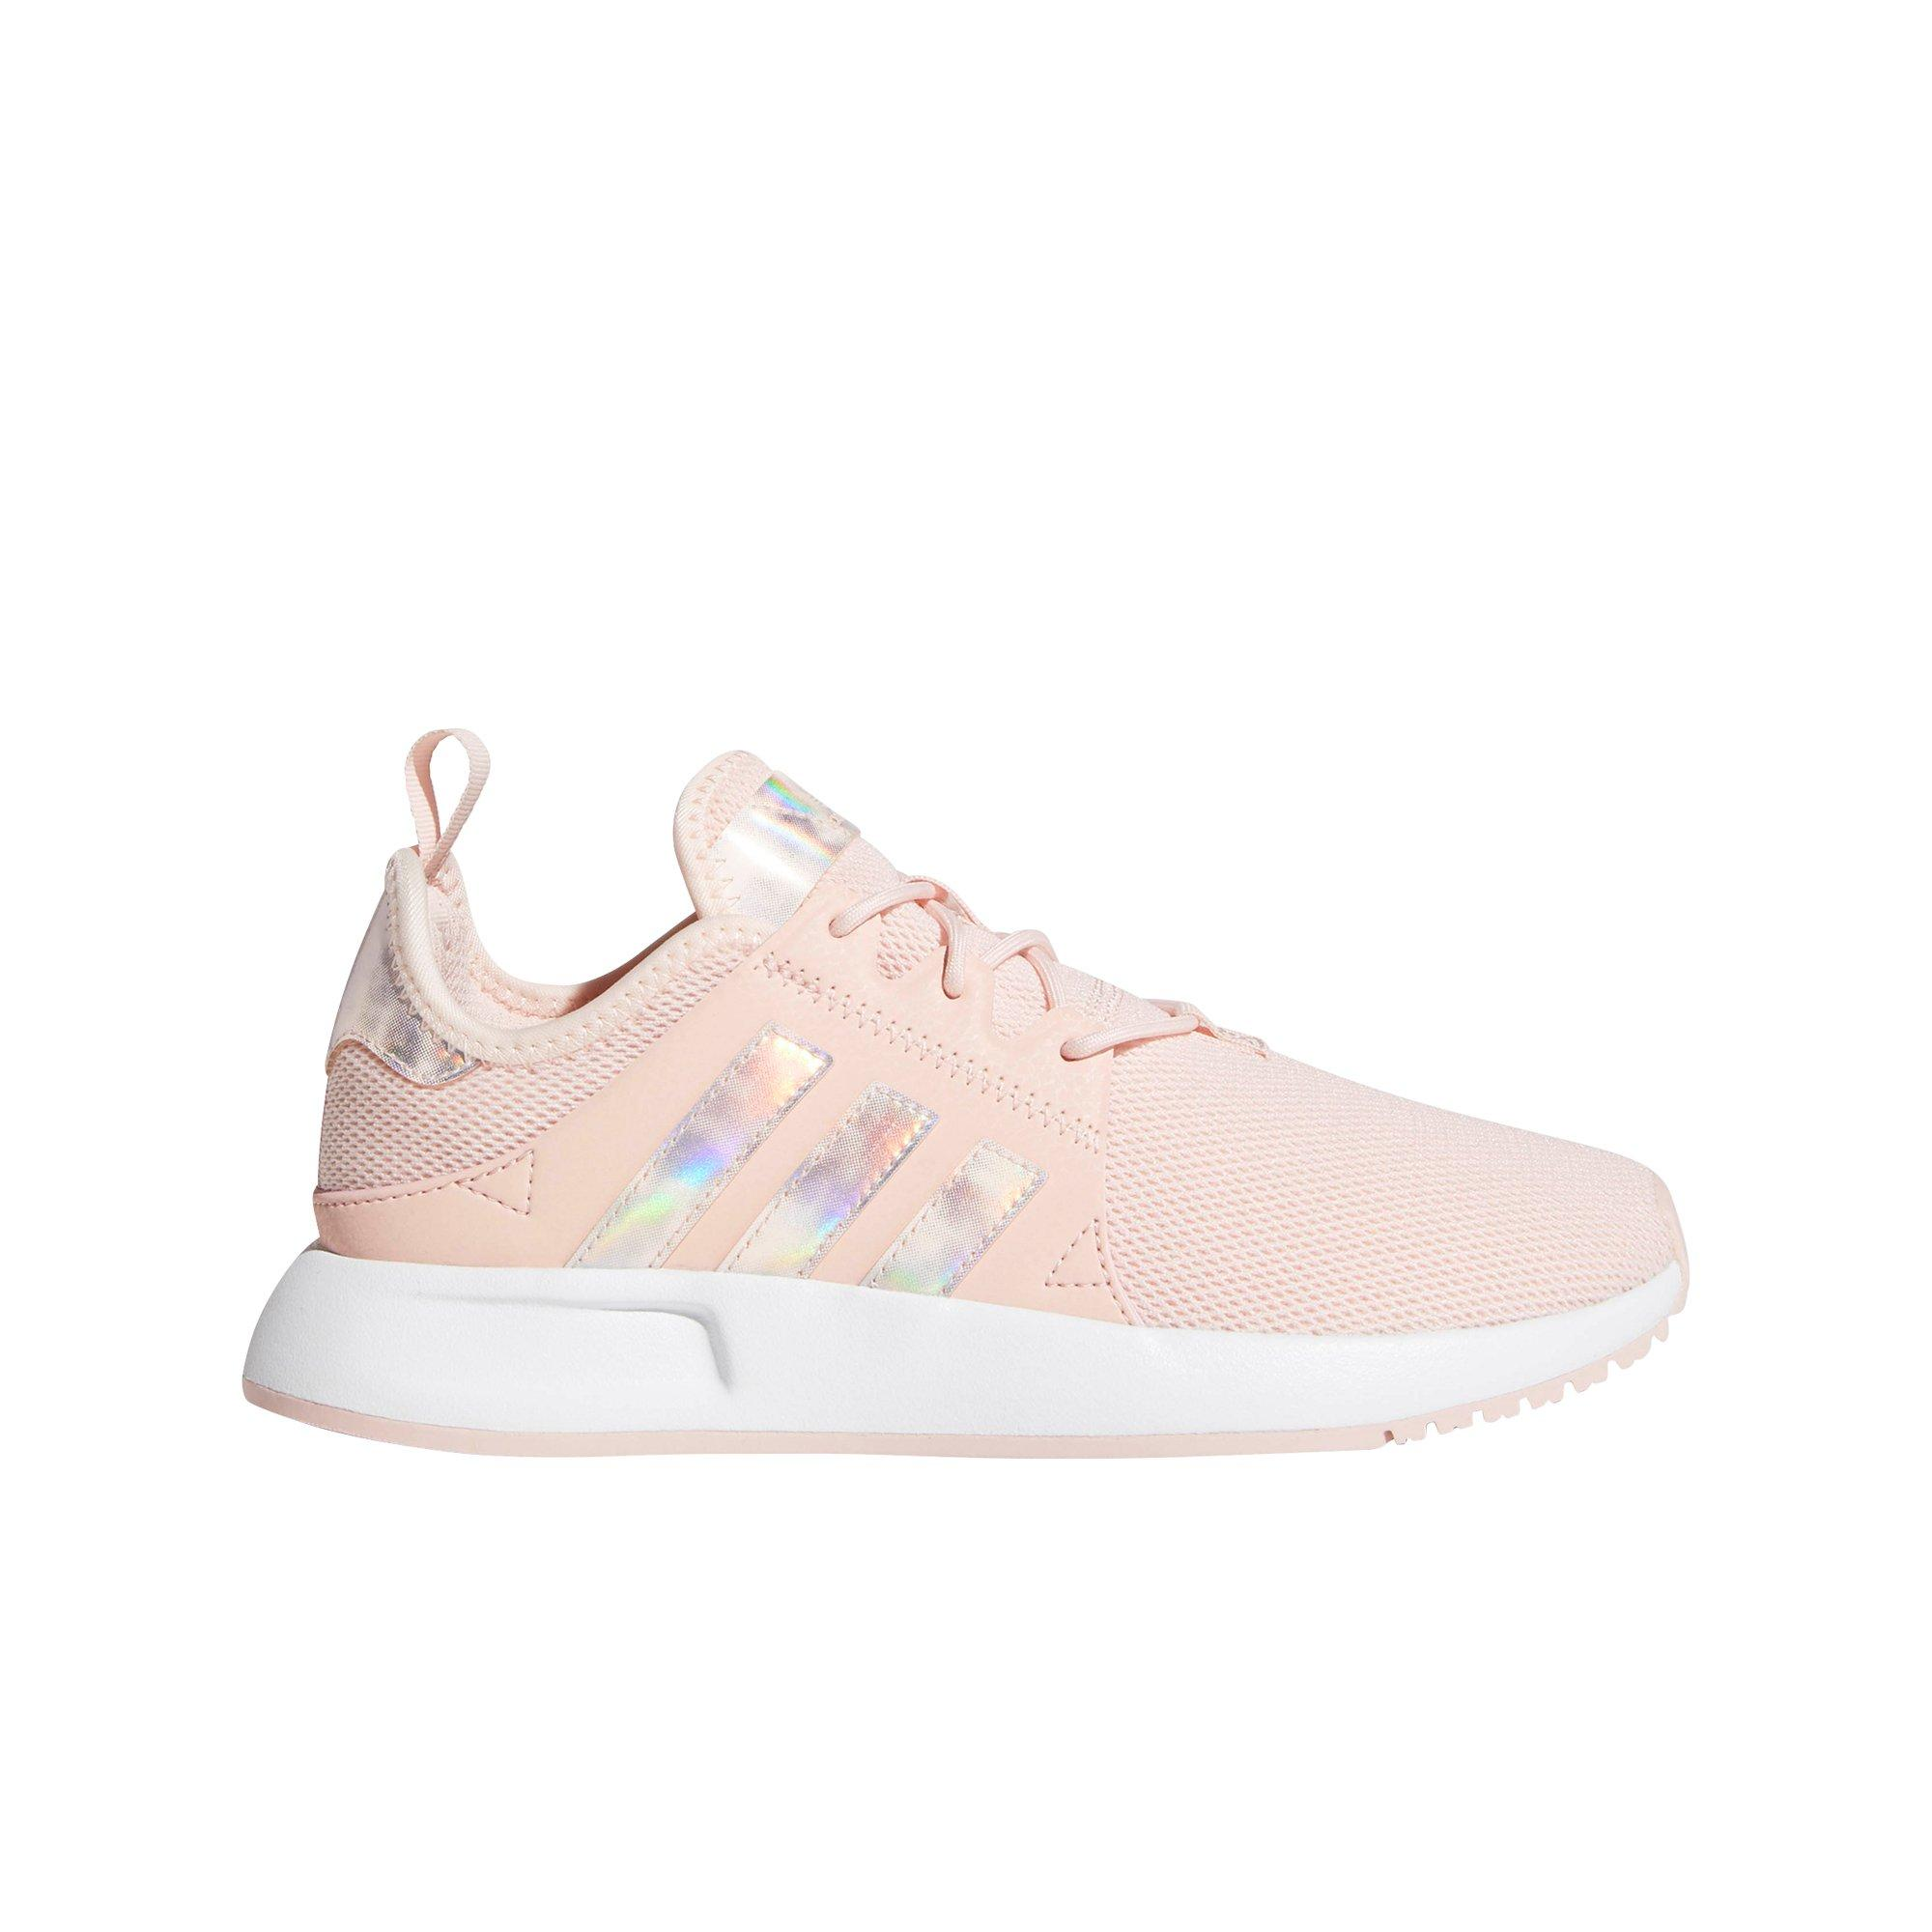 Womens 7.5 Icy Pink Adidas X_plr sneakers